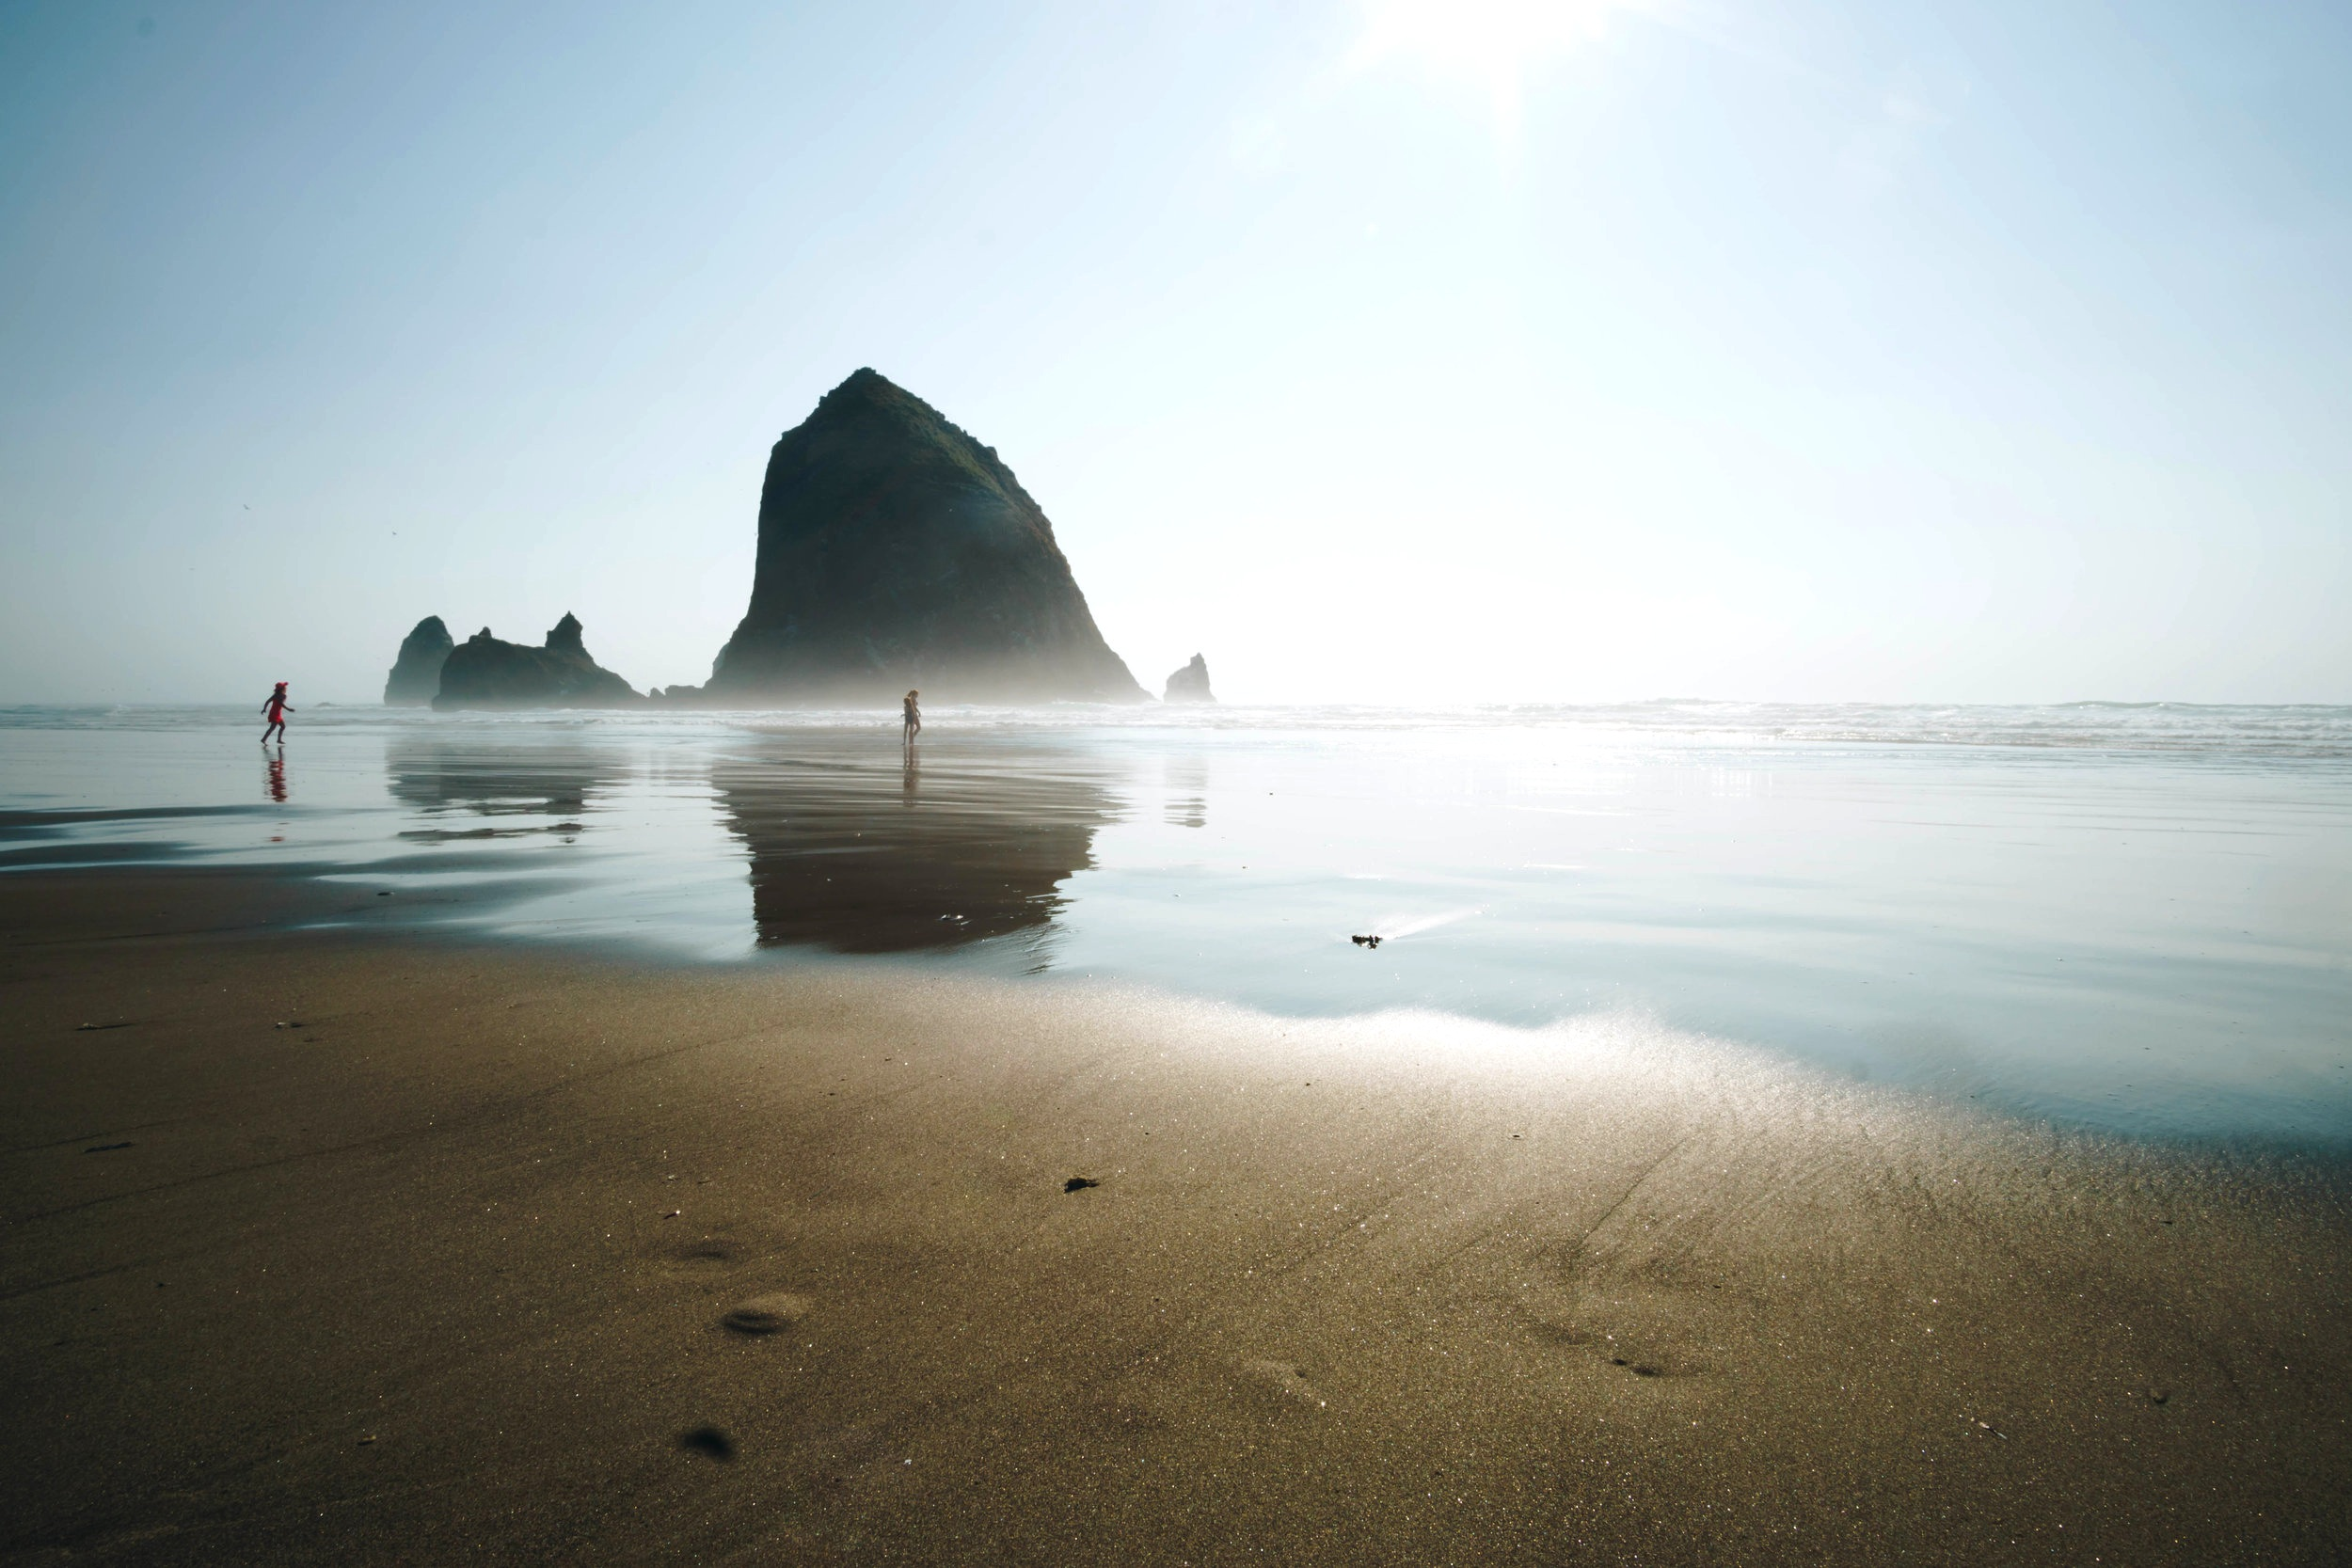 Northern Oregon Coast Road Trip - Visit Seaside and other coastal towns on this Northern Oregon Coast road trip. A driving itinerary covering highlights and best stops along the northern Oregon coast.